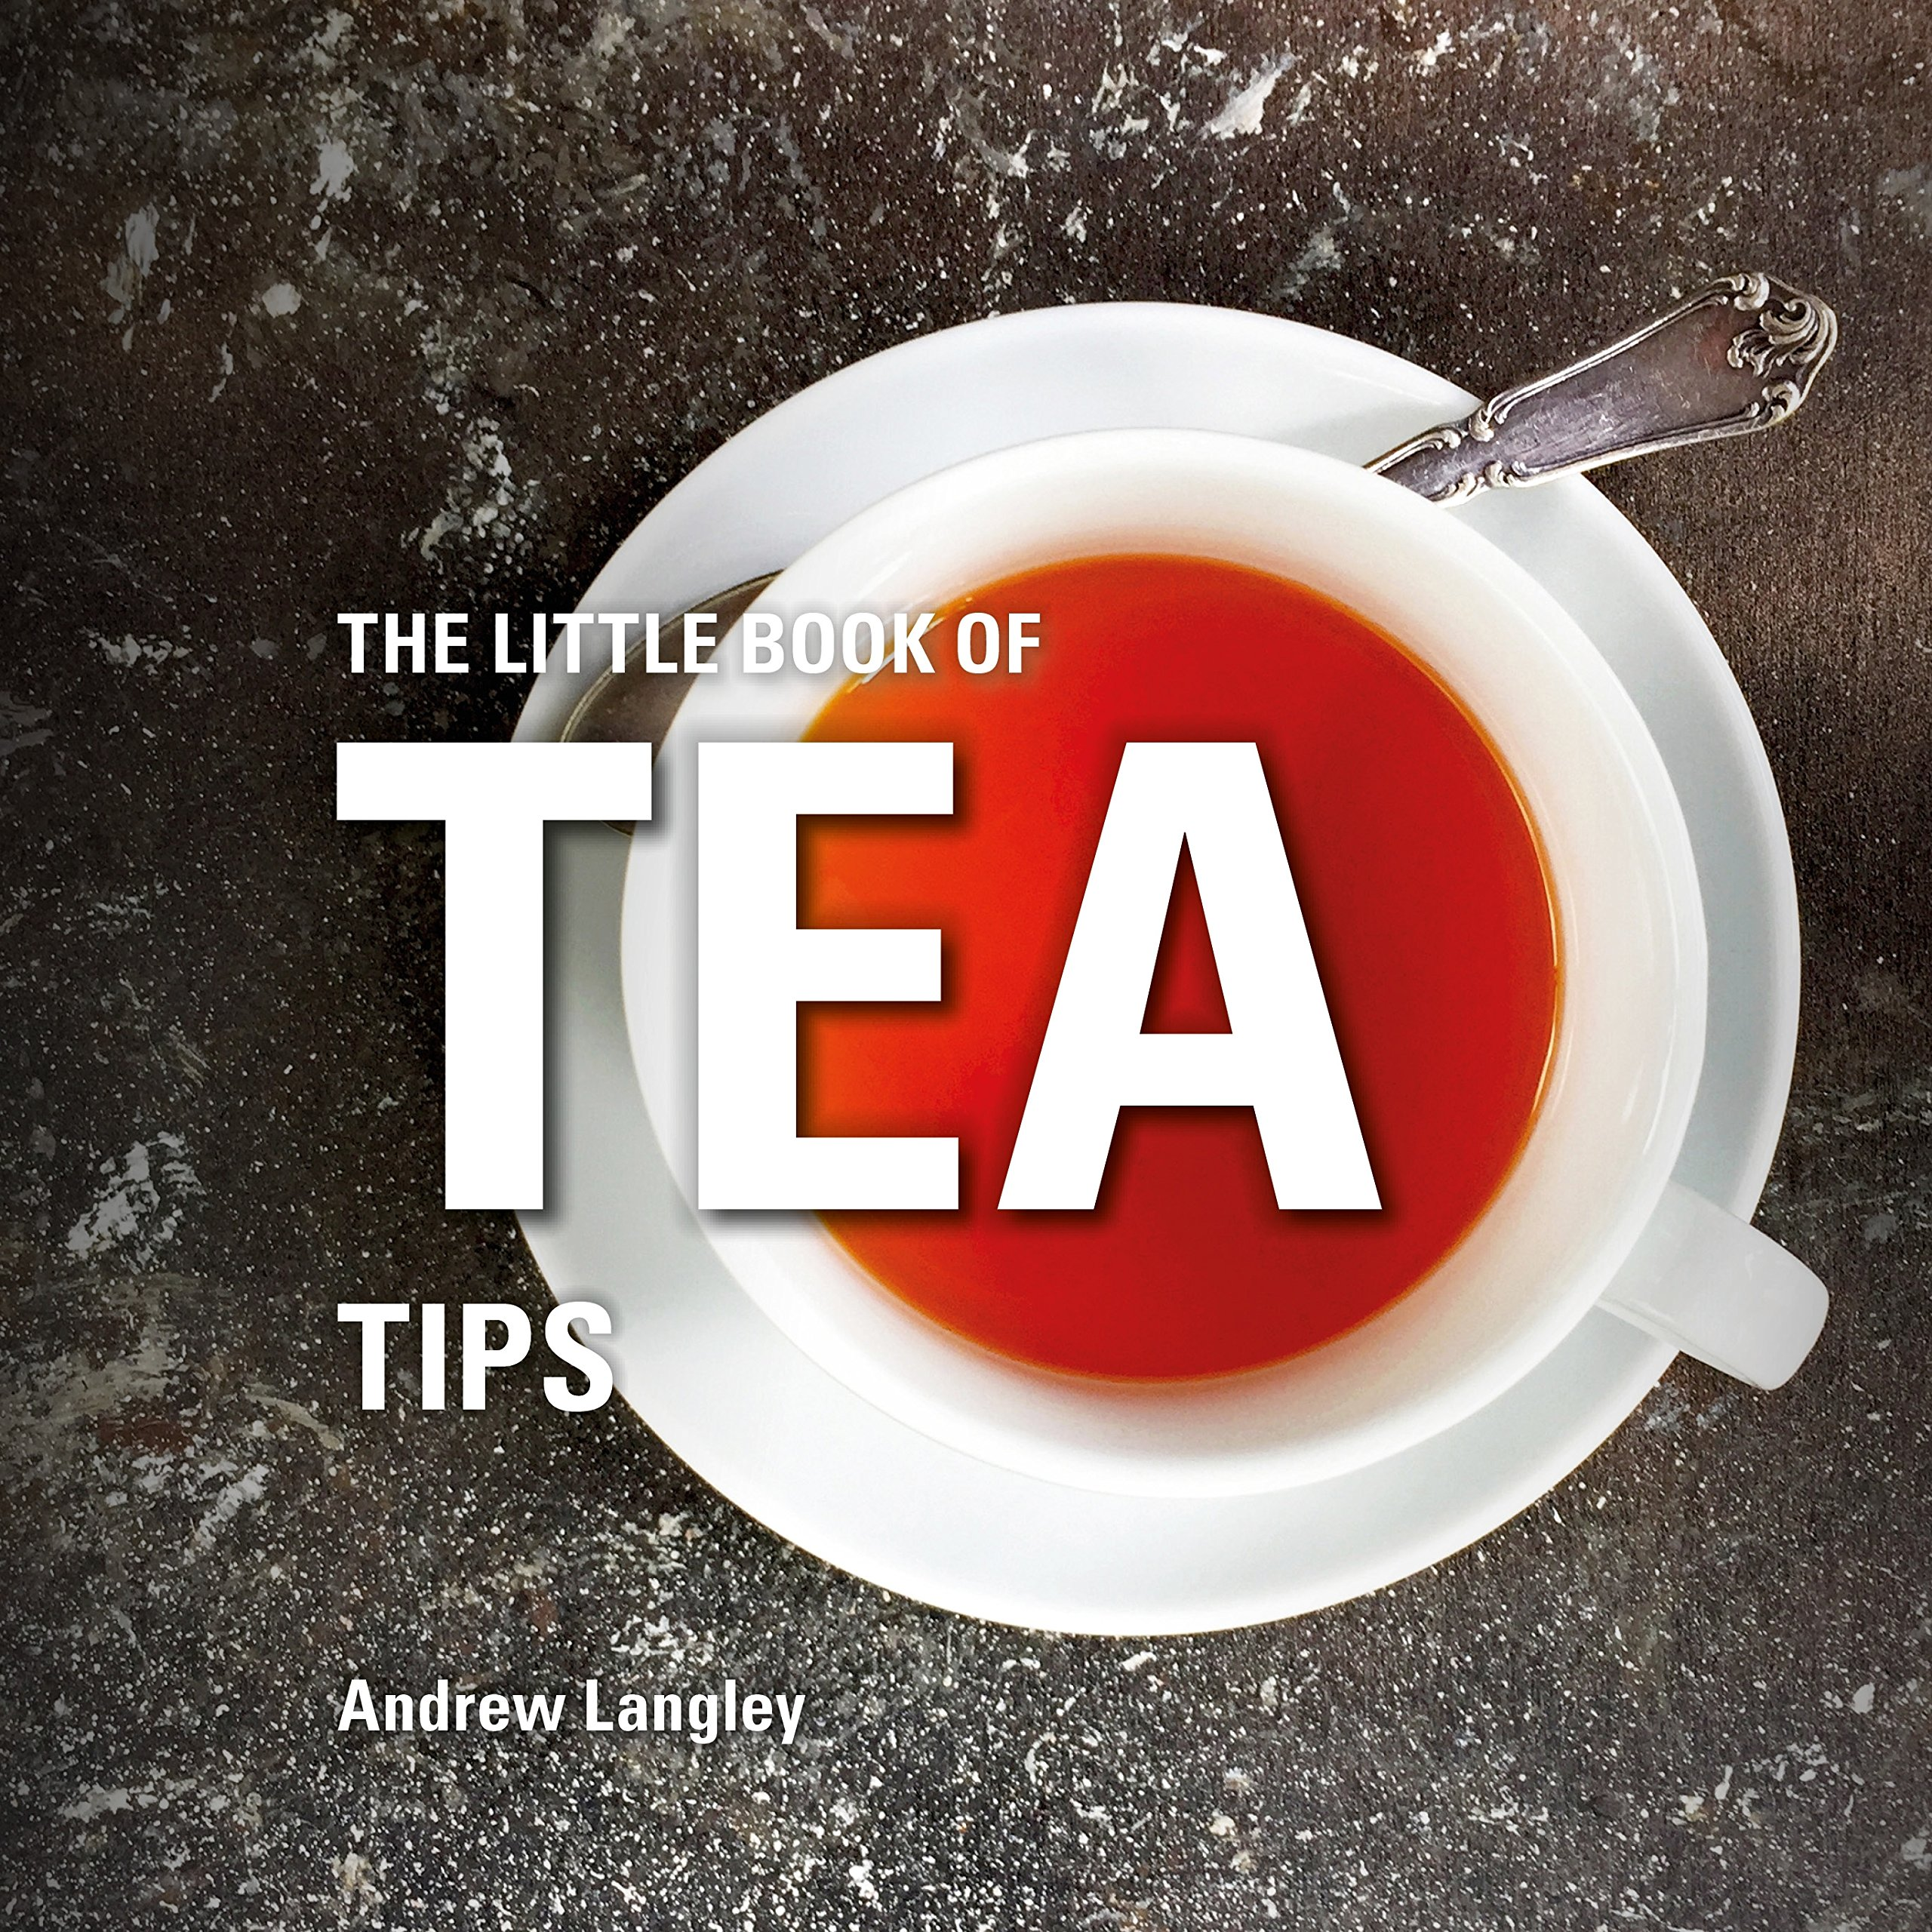 Download The Little Book of Tea Tips (Little Books of Tips) ebook